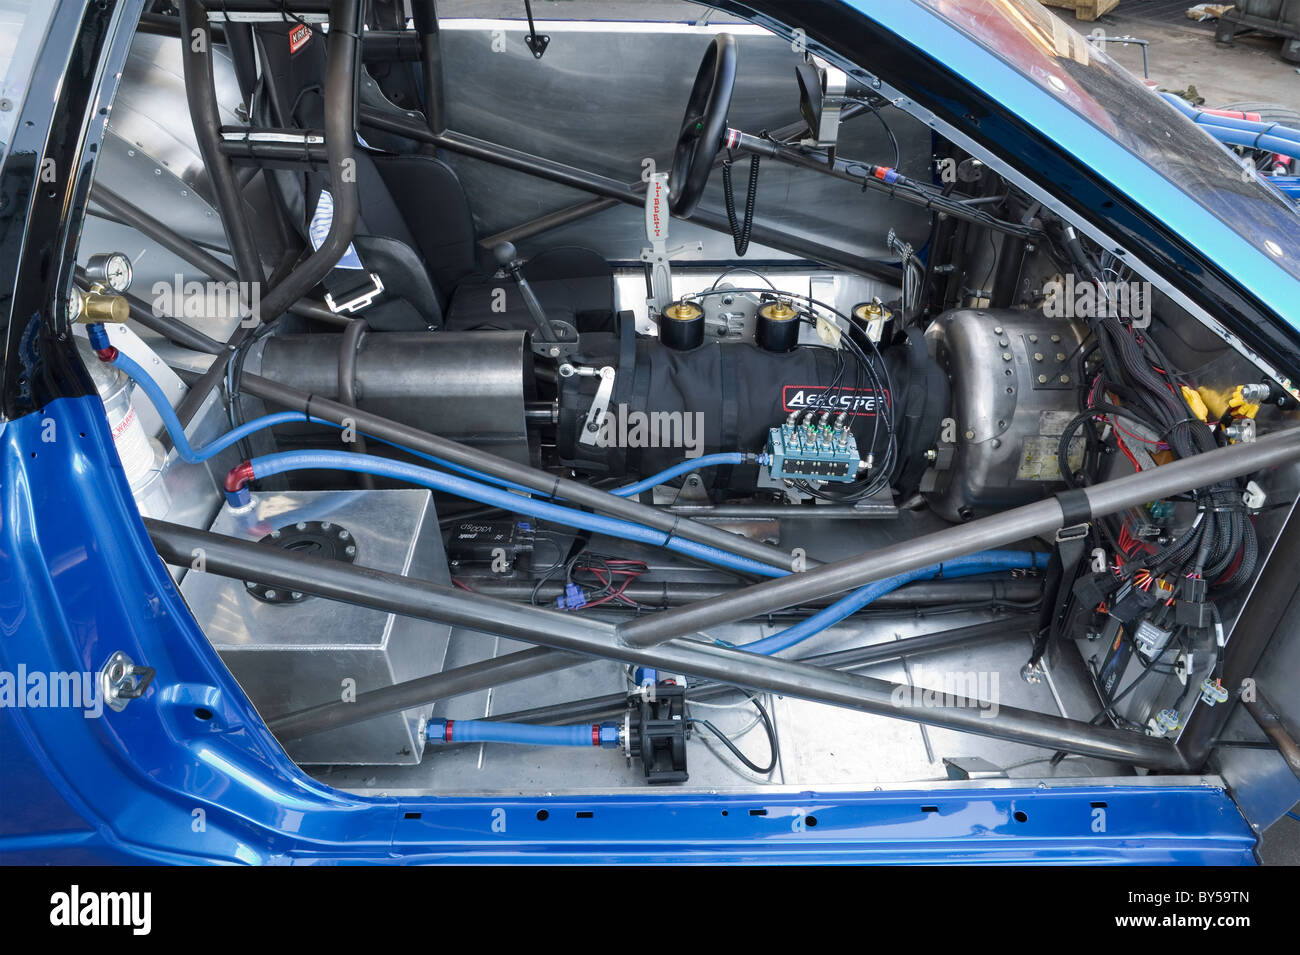 hight resolution of cockpit in a drag racing car showing components and parts such as gearbox safety cage gear shifter electrical parts etc